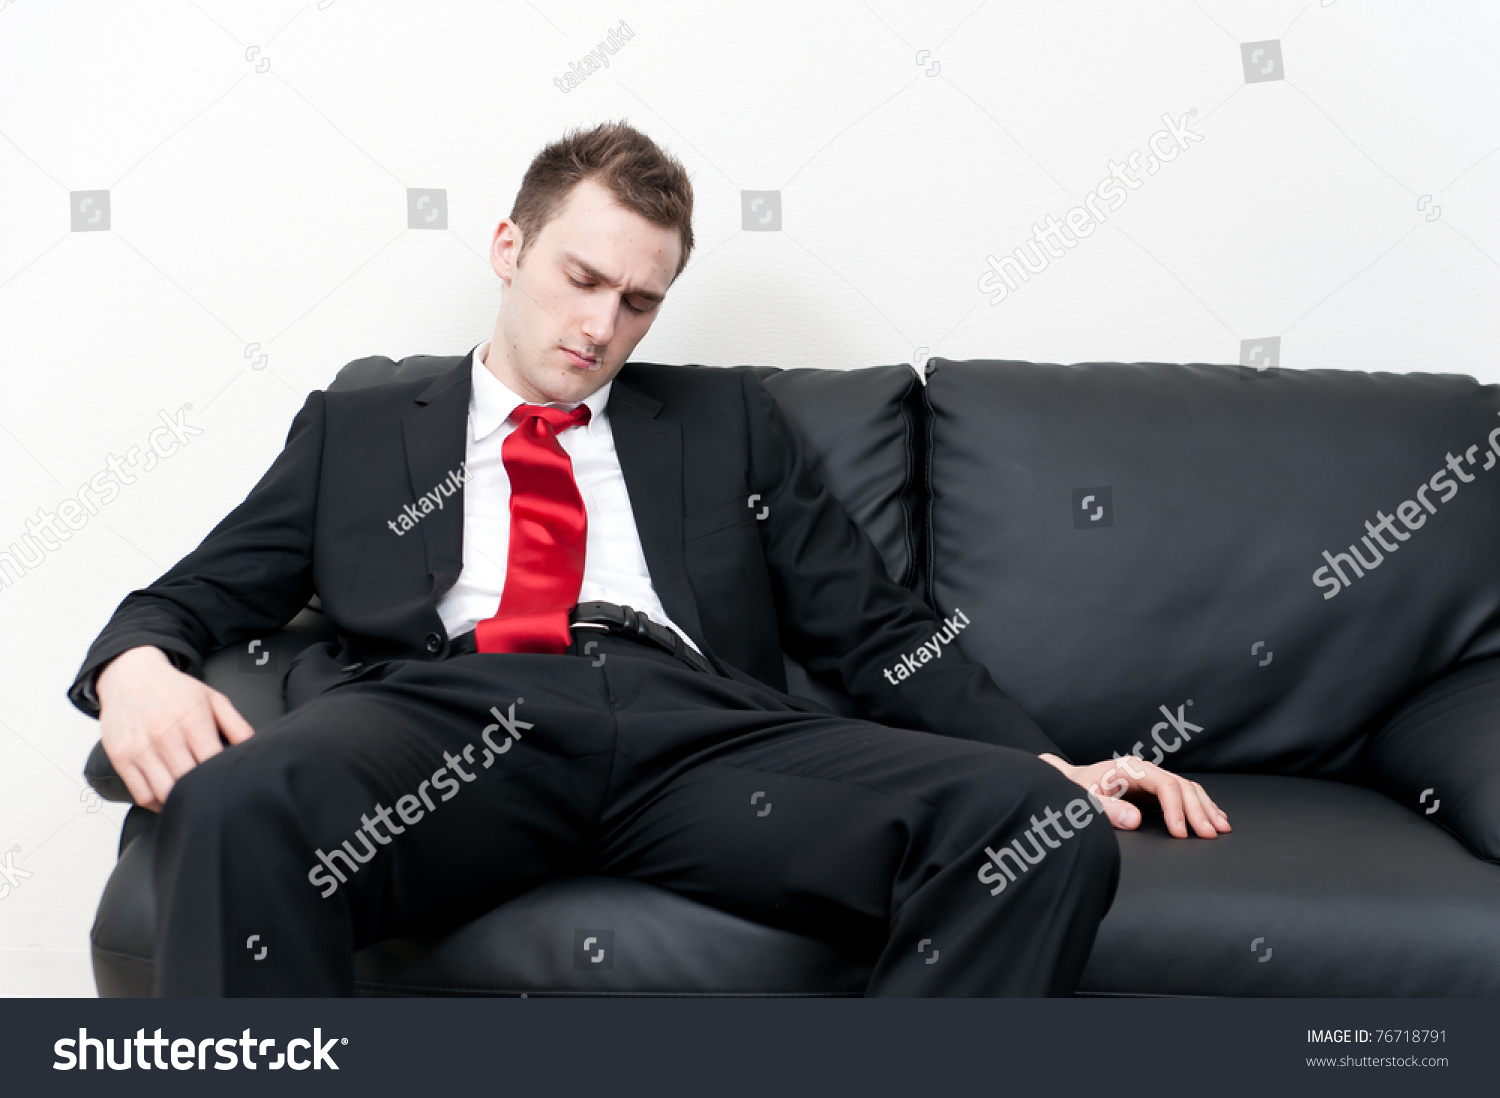 Guy Wearing Suit Sleeping On Couch Stock Photo 76718791 - Shutterstock